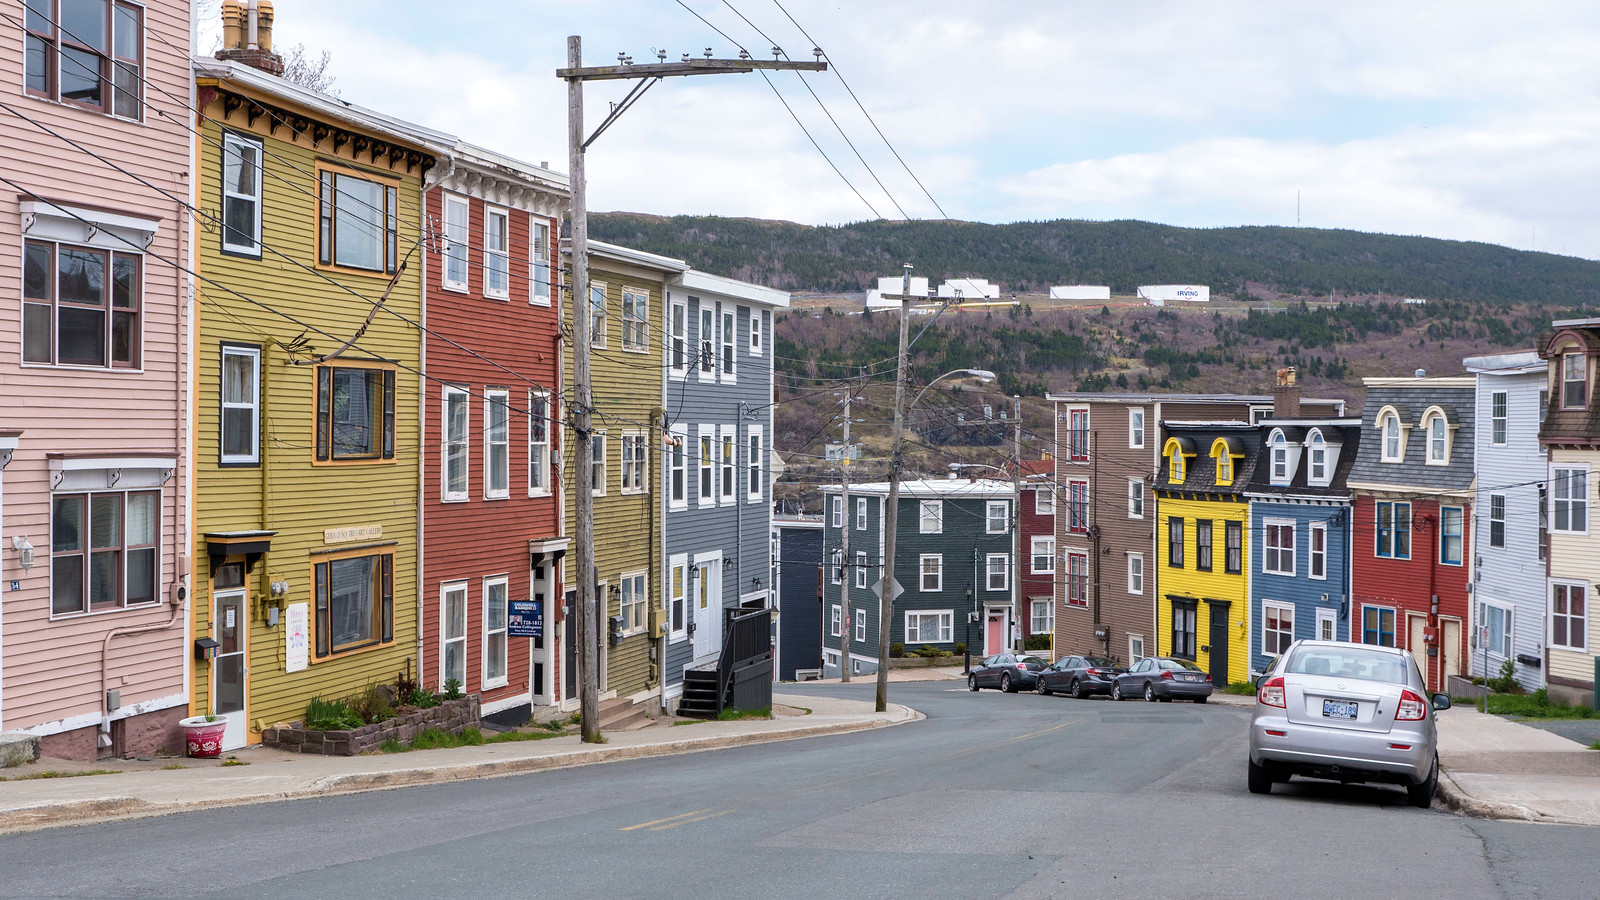 How to Spend a Weekend in St. John's Newfoundland